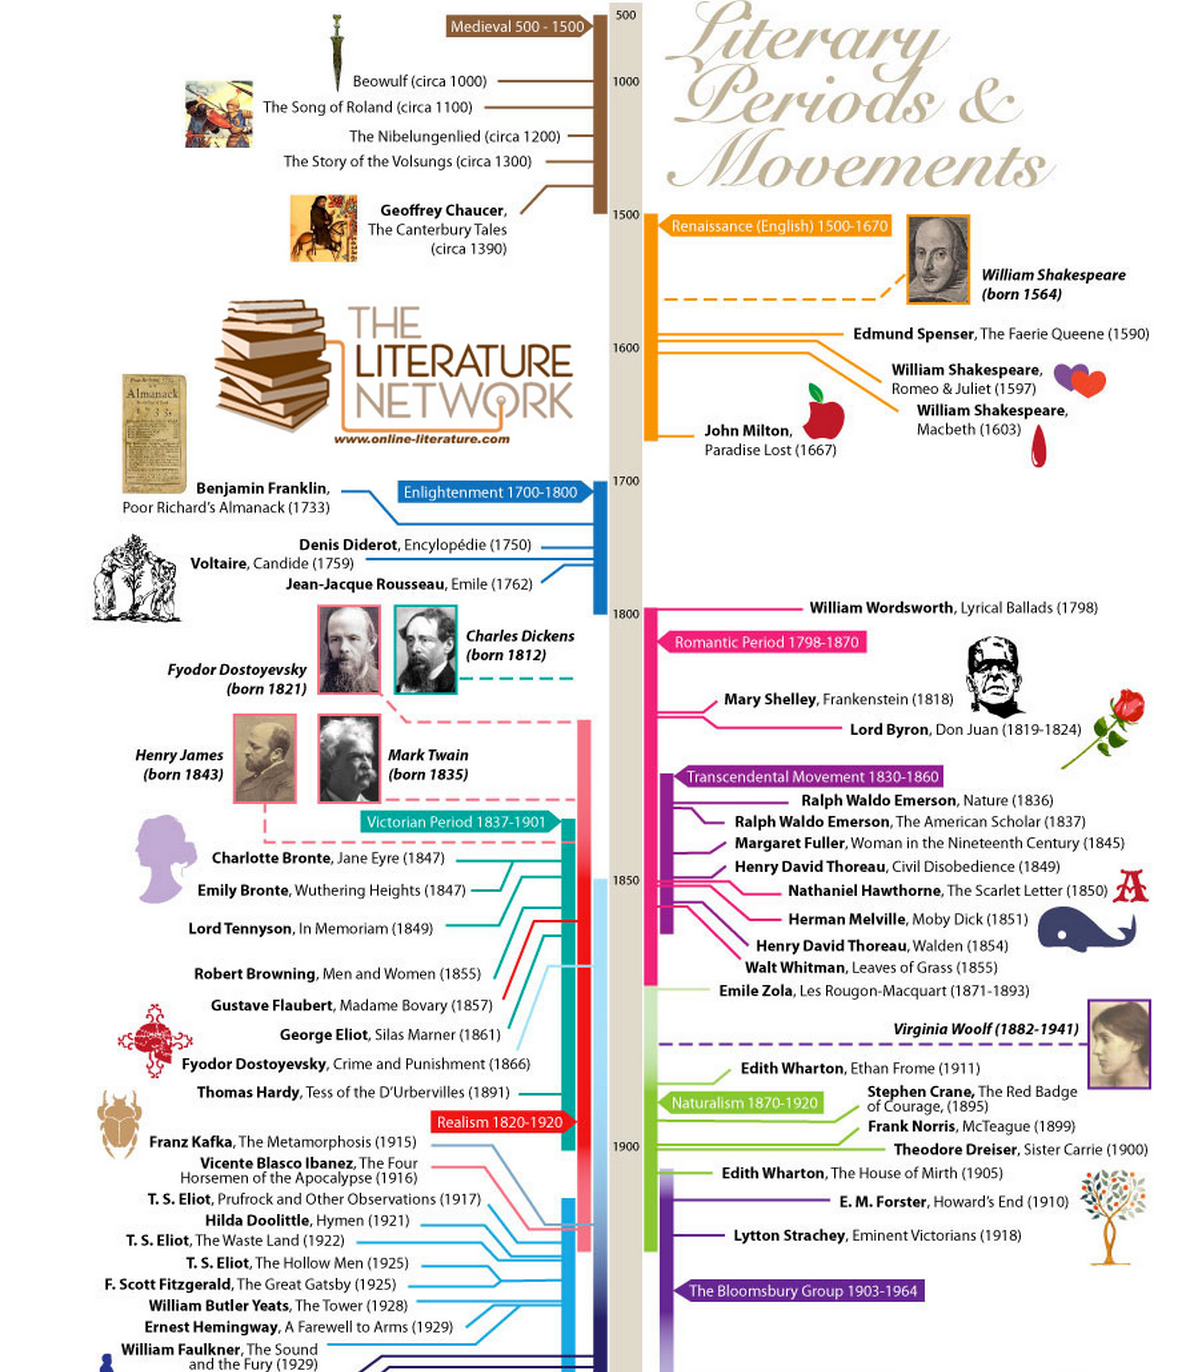 A Great Visual Timeline Chronicling The Major Literary Events Movements And Authors